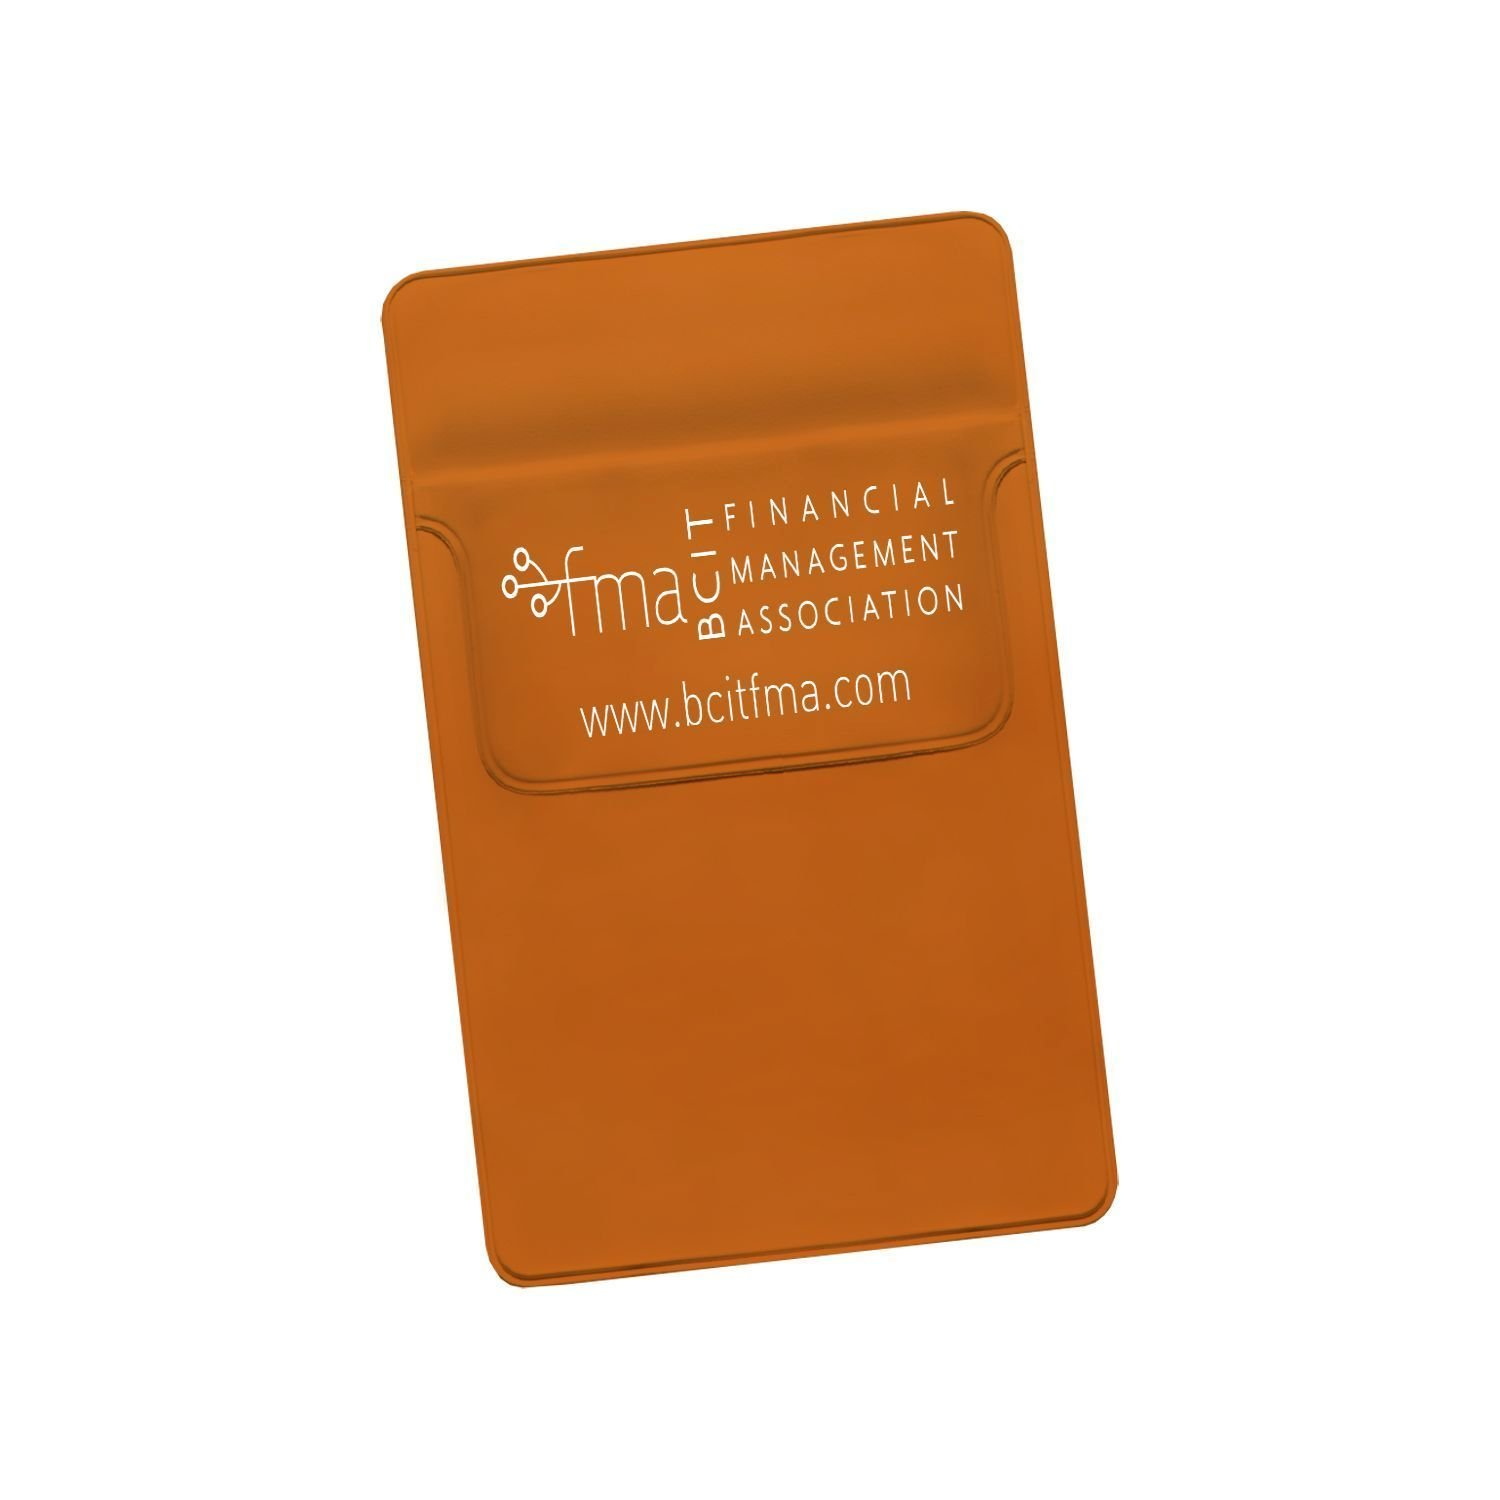 Promos With Imprint Personalized Pocket Protector 1 3/4 Flap -300 per Package- Bulk by Promos With Imprint (Image #1)